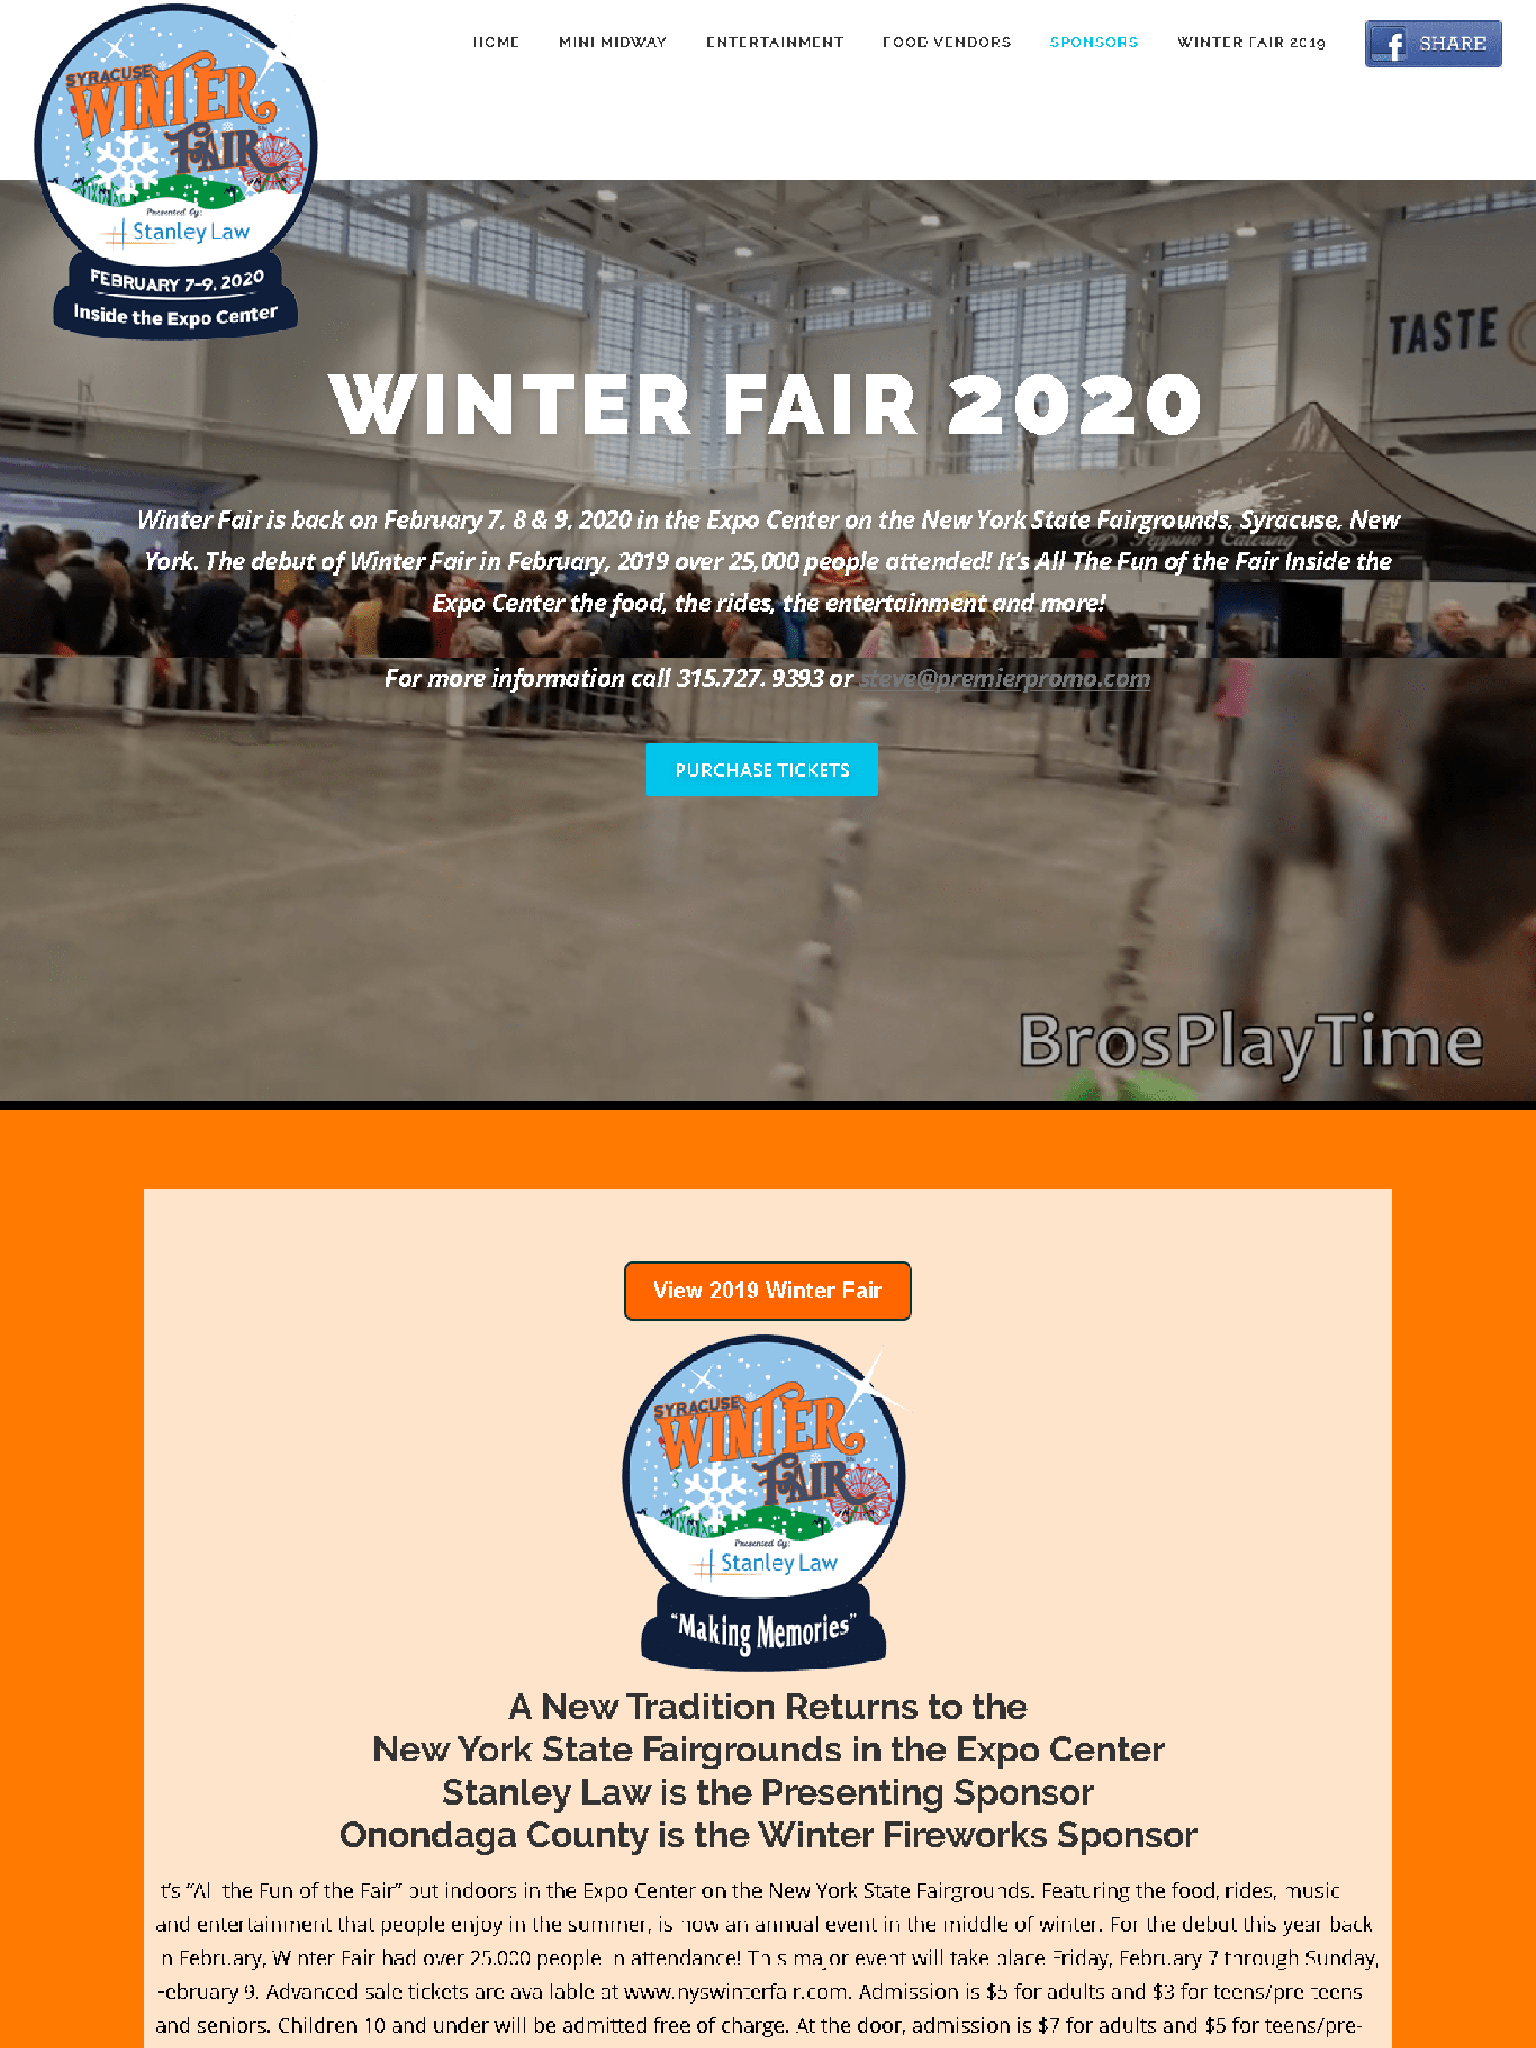 Winter Fair 2020 Syracuse New York State Fair Gounds iPad